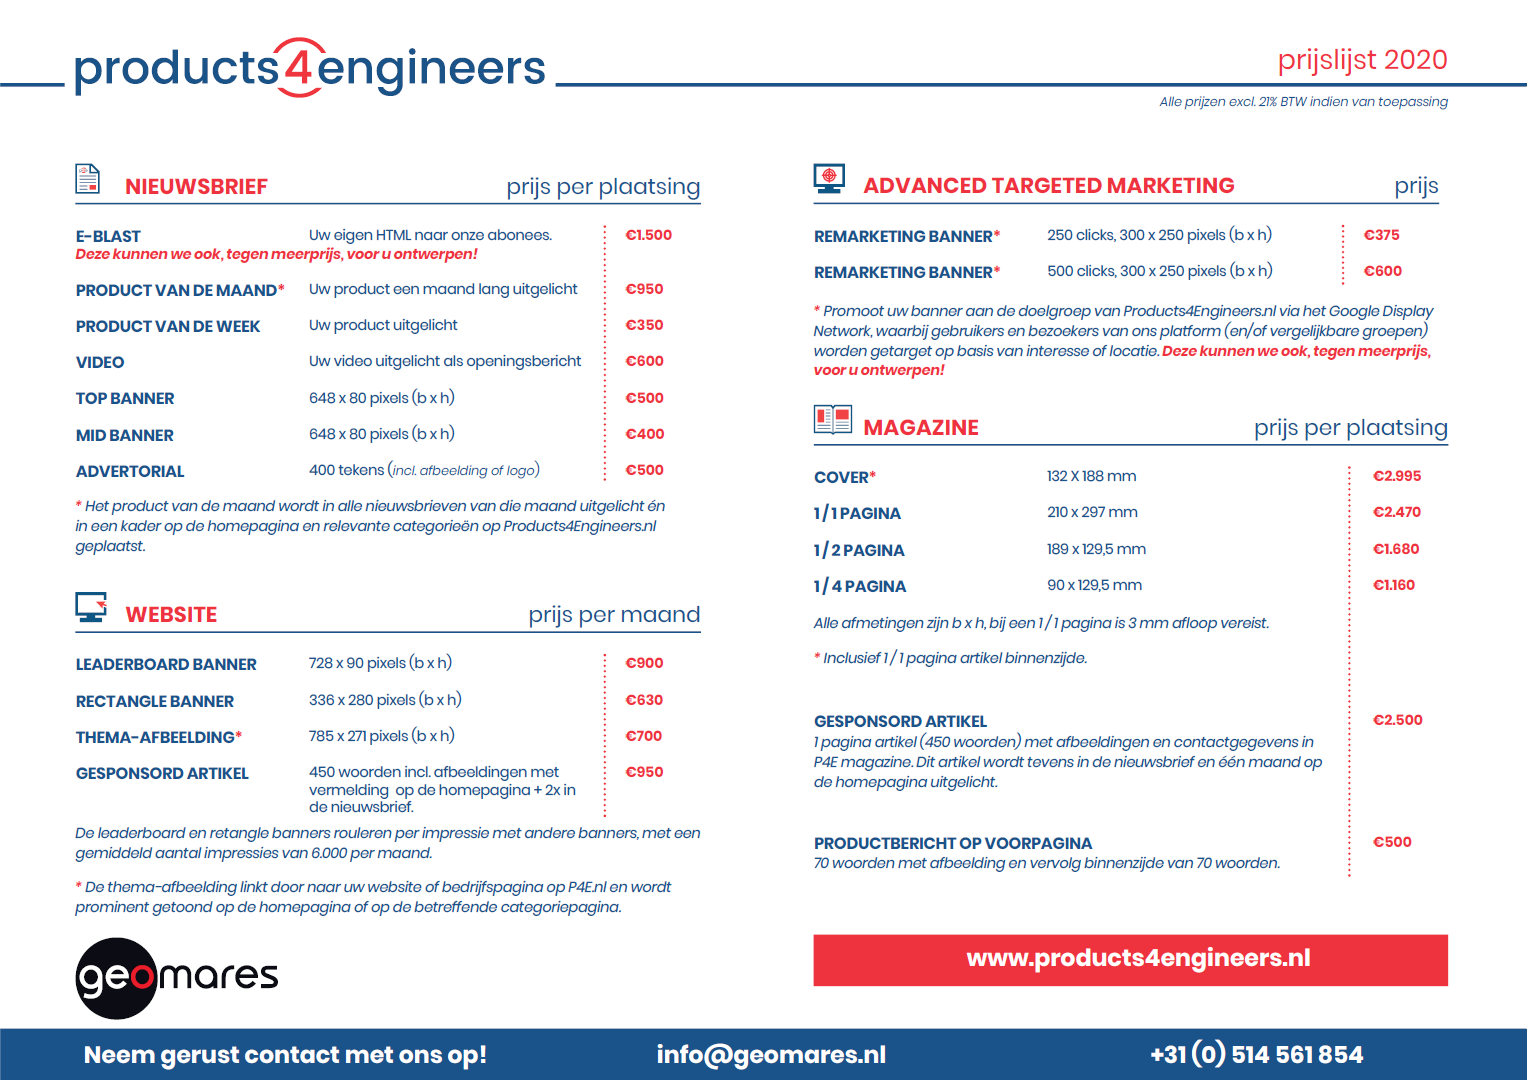 Products4Engineers infosheet 2020 - Voorkant